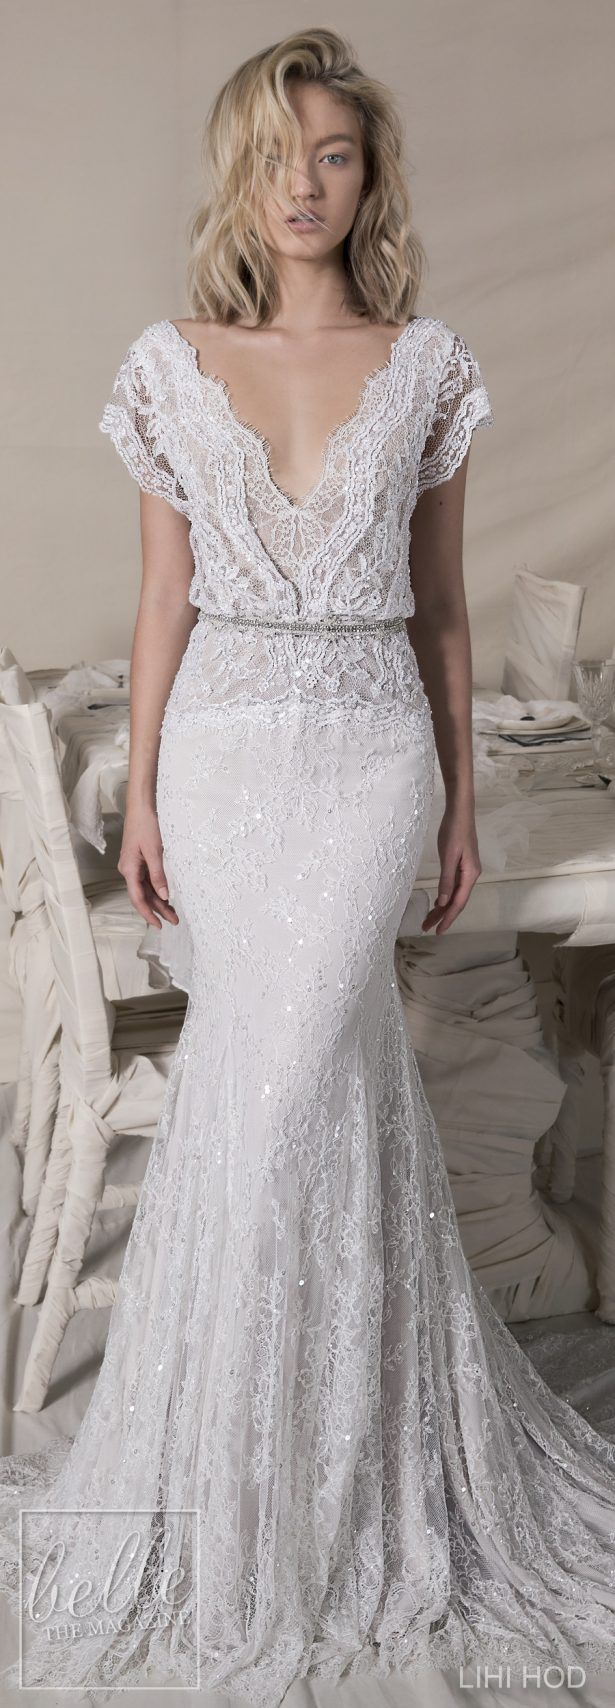 best wedding dress images on pinterest engagements gown